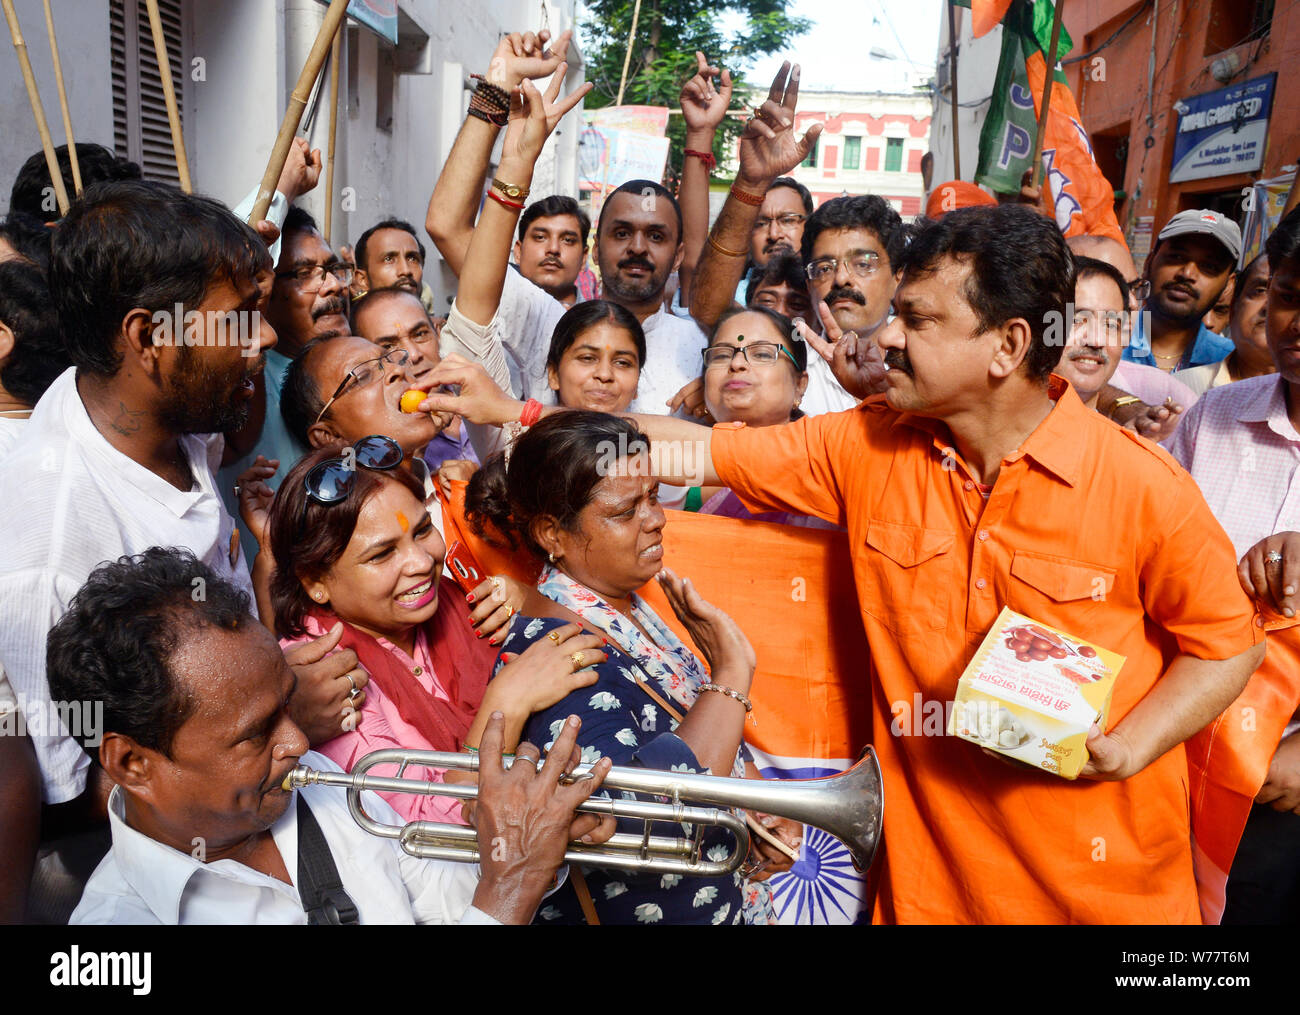 Kolkata, India. 05th Aug, 2019. Bharatiya Janta Party or BJP activists celebrate the Union Government moves to revoke Article 370 which give special status to Jammu and Kashmir. Credit: Saikat Paul/Pacific Press/Alamy Live News Stock Photo